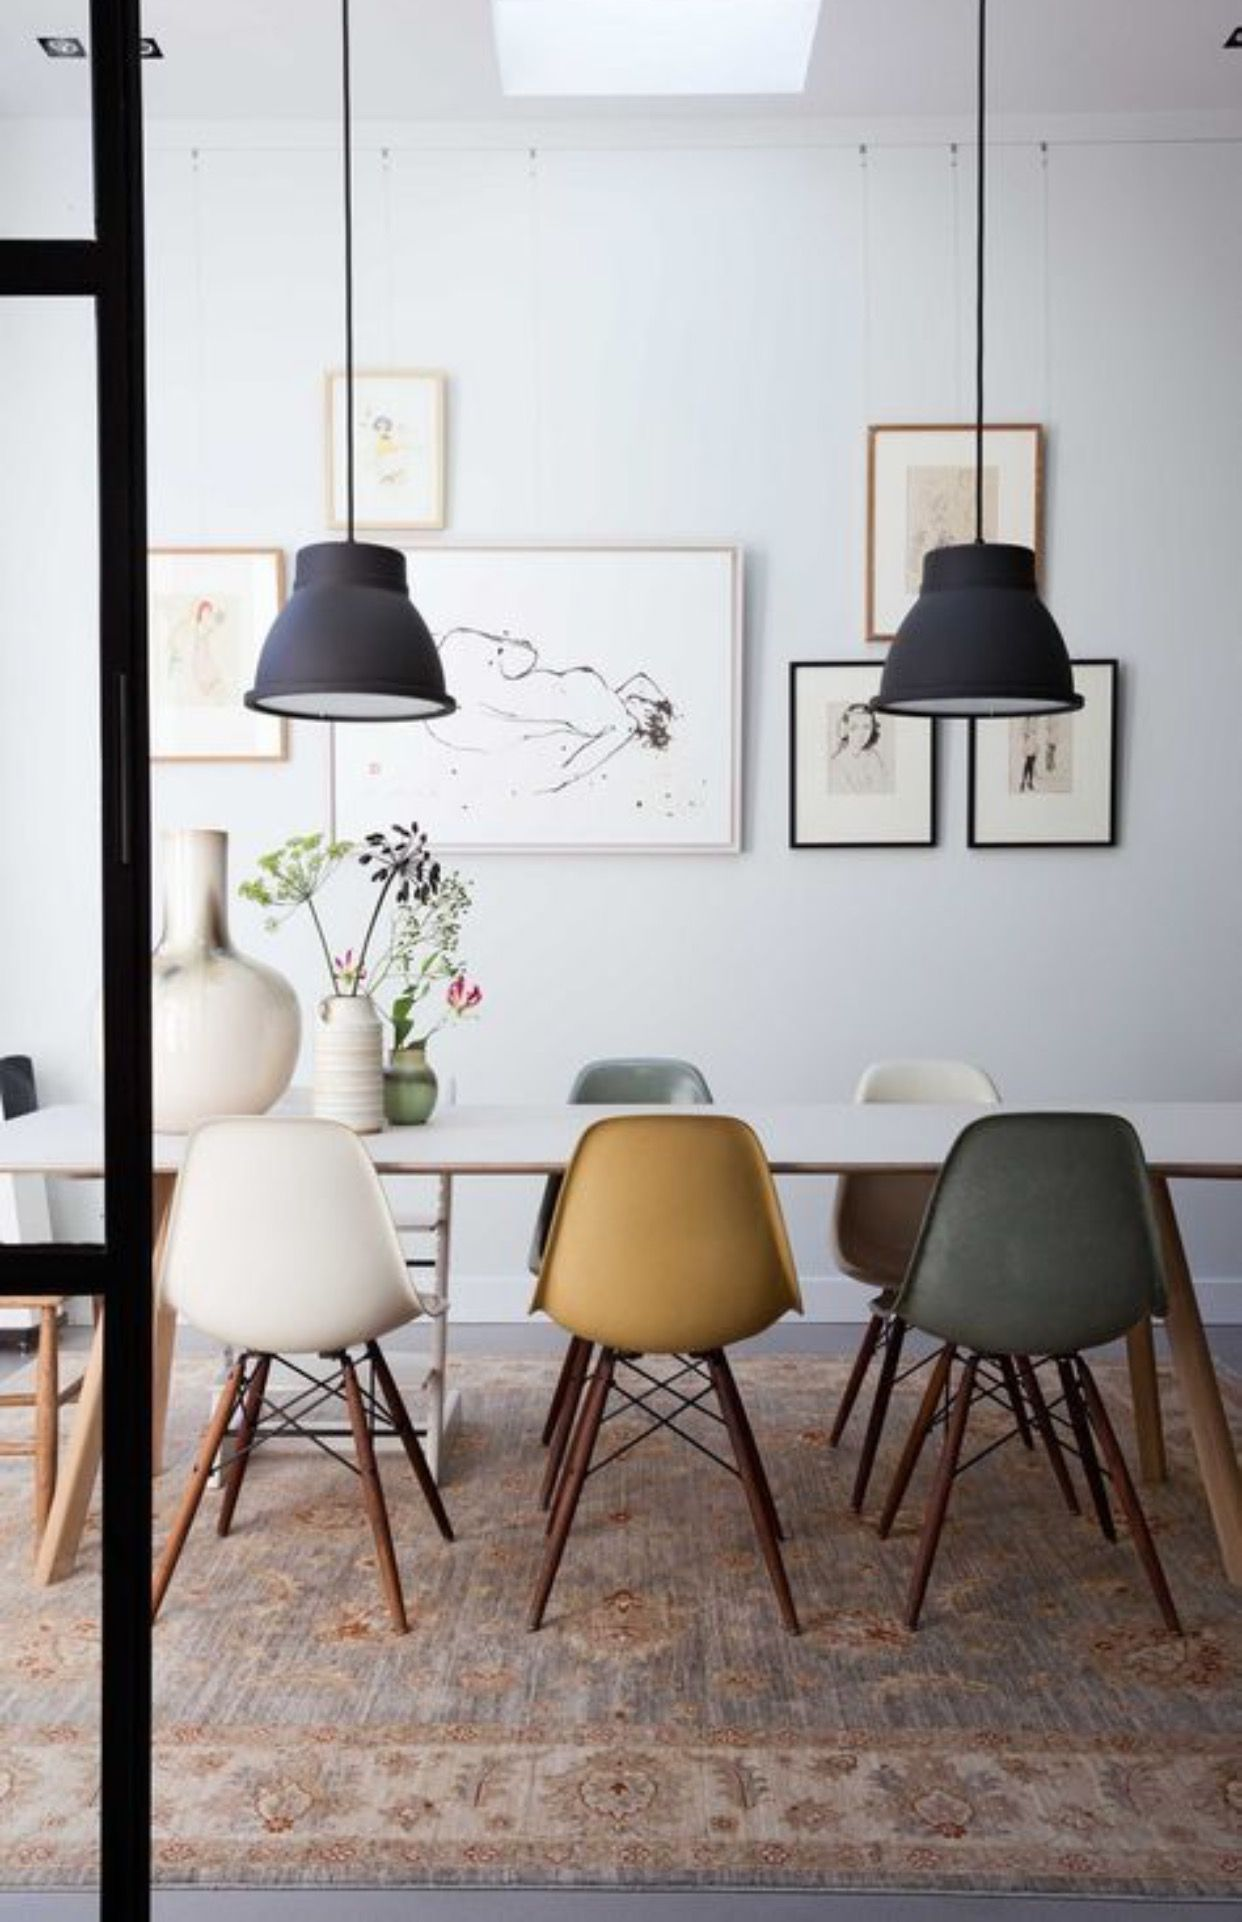 Mixmatch Chairs Goodbye Crop Top Scandinavian Dining Room Dining Room Inspiration Modern Dining Room